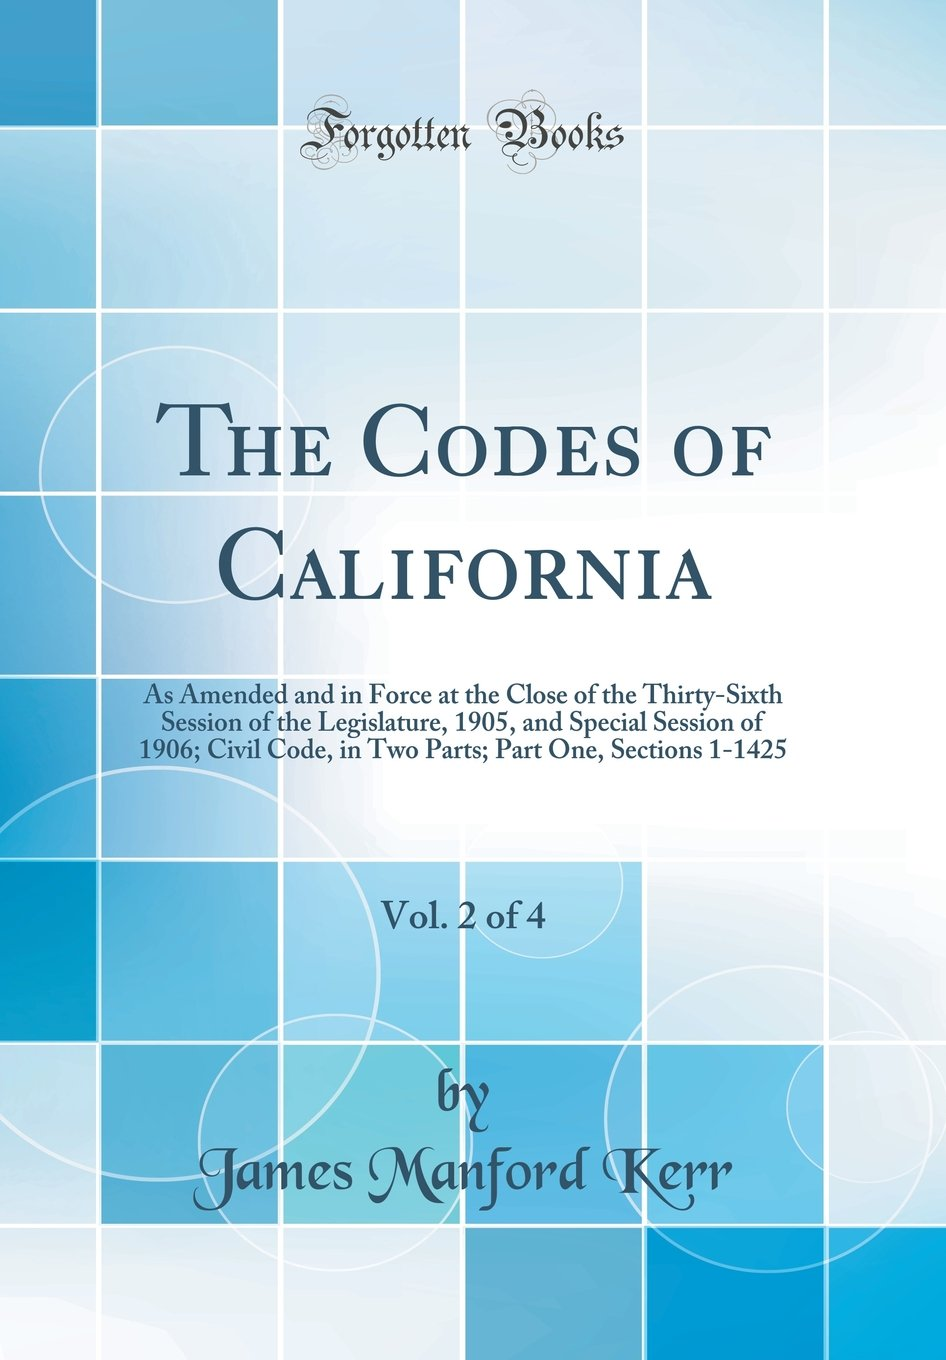 The Codes of California, Vol. 2 of 4: As Amended and in Force at the Close of the Thirty-Sixth Session of the Legislature, 1905, and Special Session ... Part One, Sections 1-1425 (Classic Reprint) PDF